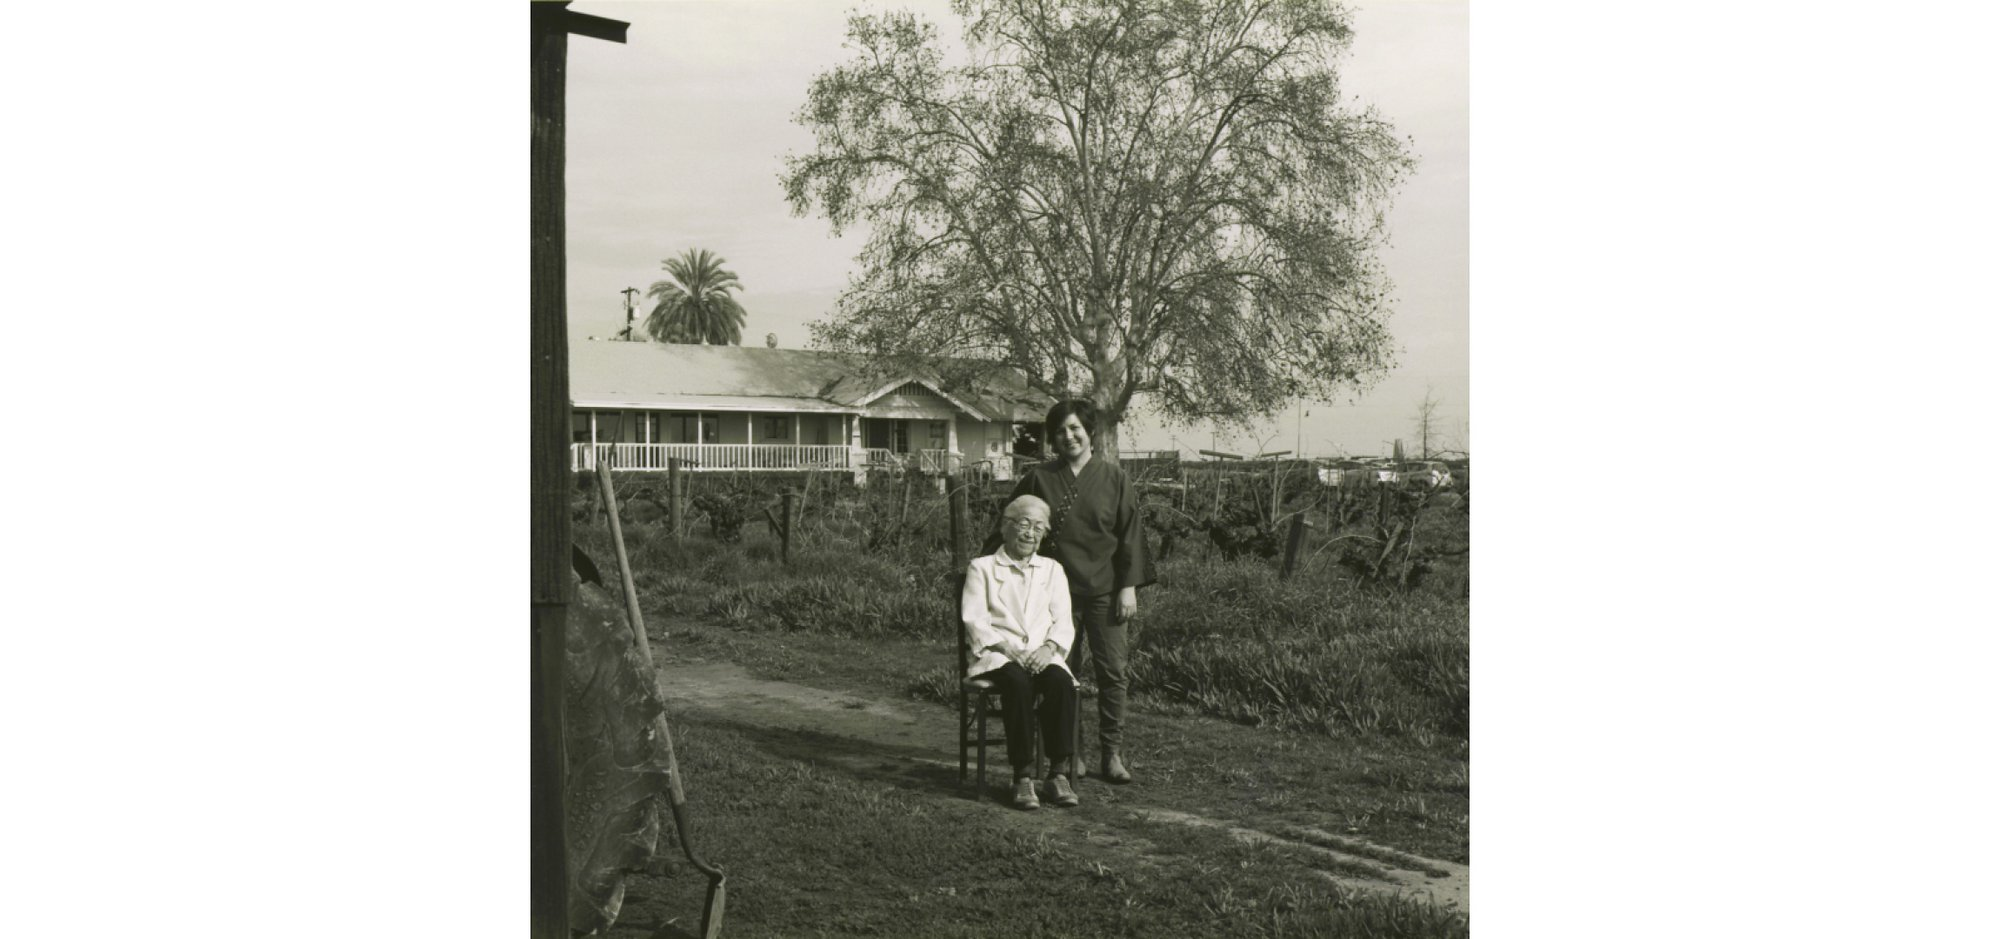 Nikiko Masumoto stands behind her grandmother, Carole Yukino Sugimoto Masumoto on the Masumoto Family Farm in Del Rey, California.